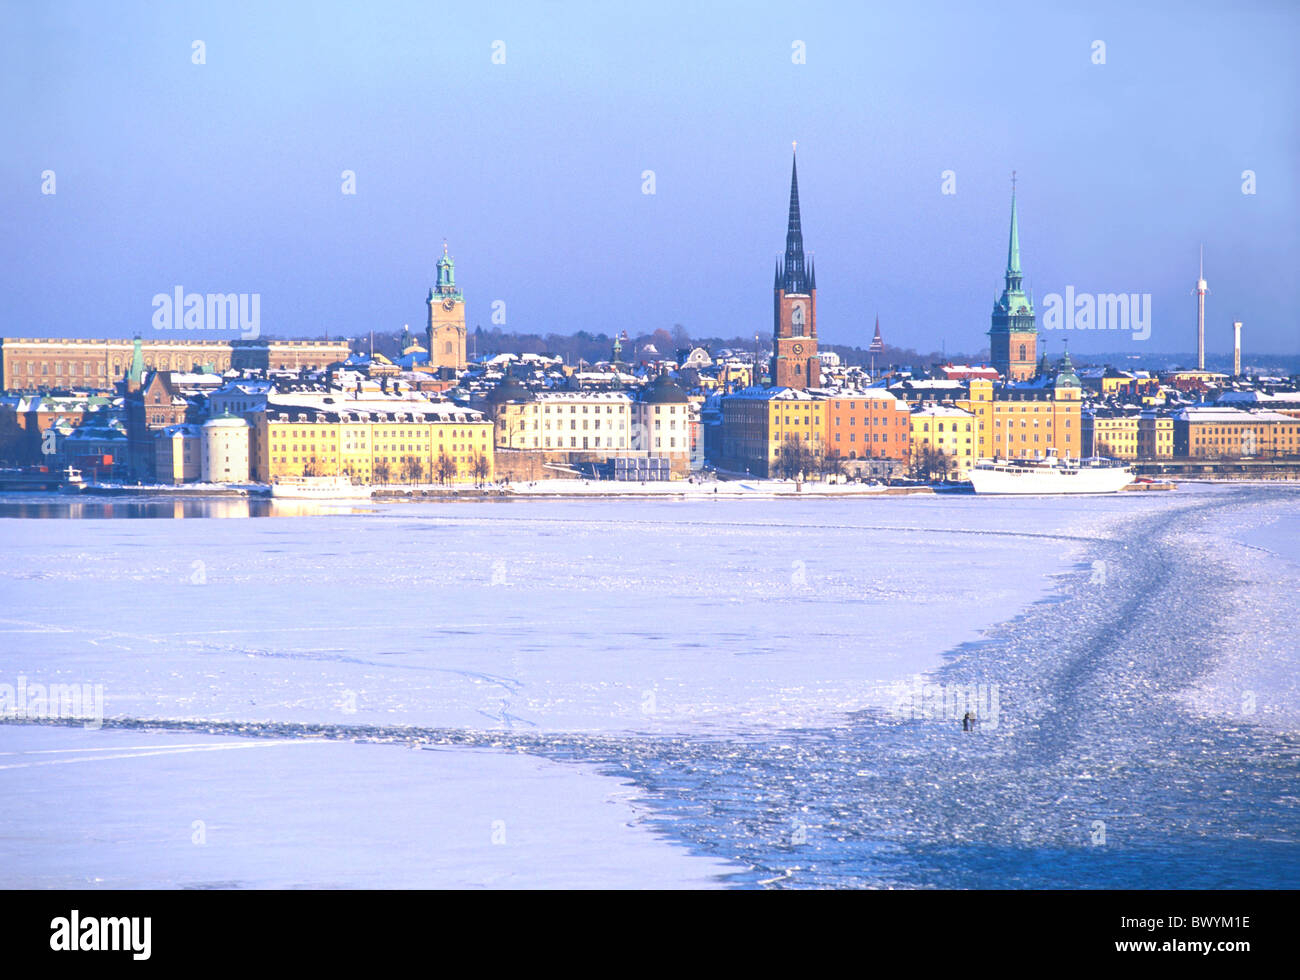 ice froze coast lake painting ares sea Riddarholmen Sweden Europe town city Stockholm overview winter - Stock Image